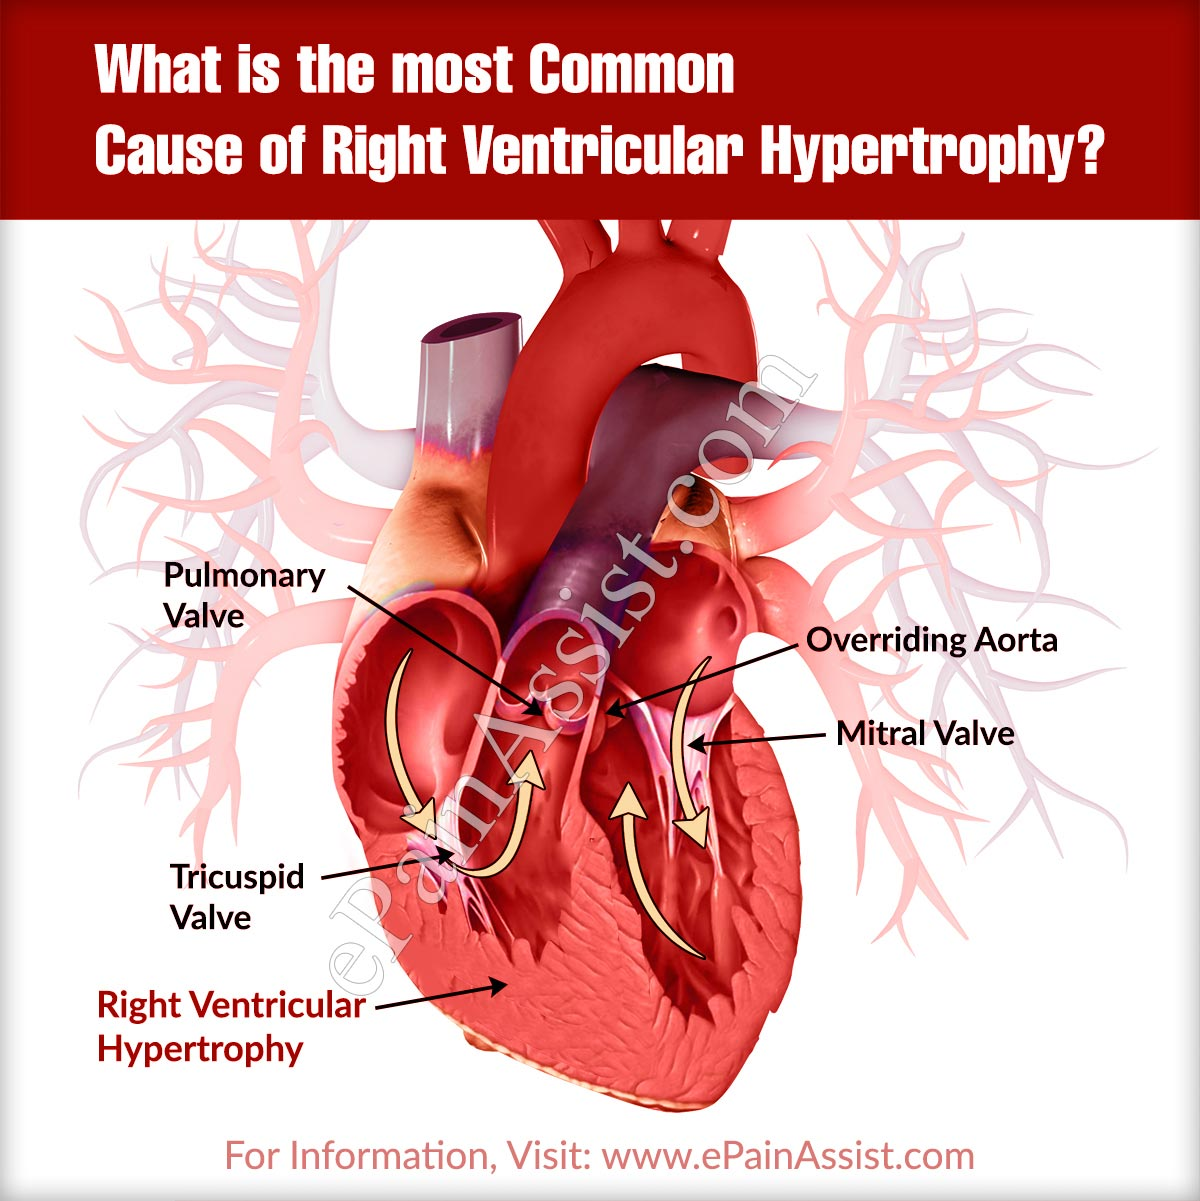 What is the most Common Cause of Right Ventricular Hypertrophy?